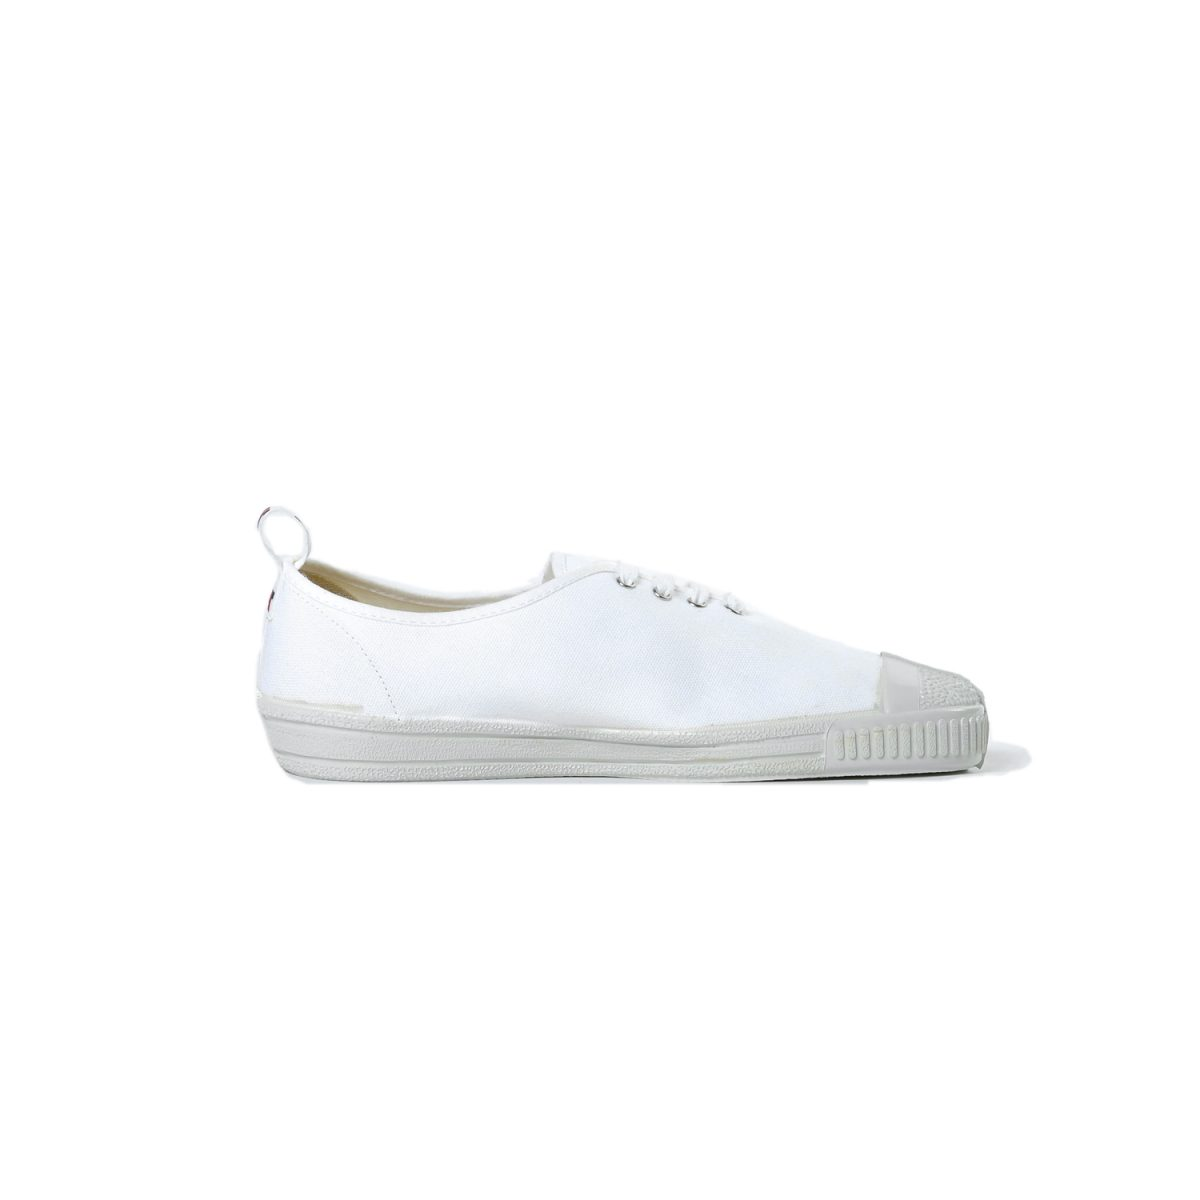 Tisza shoes - Camping - White